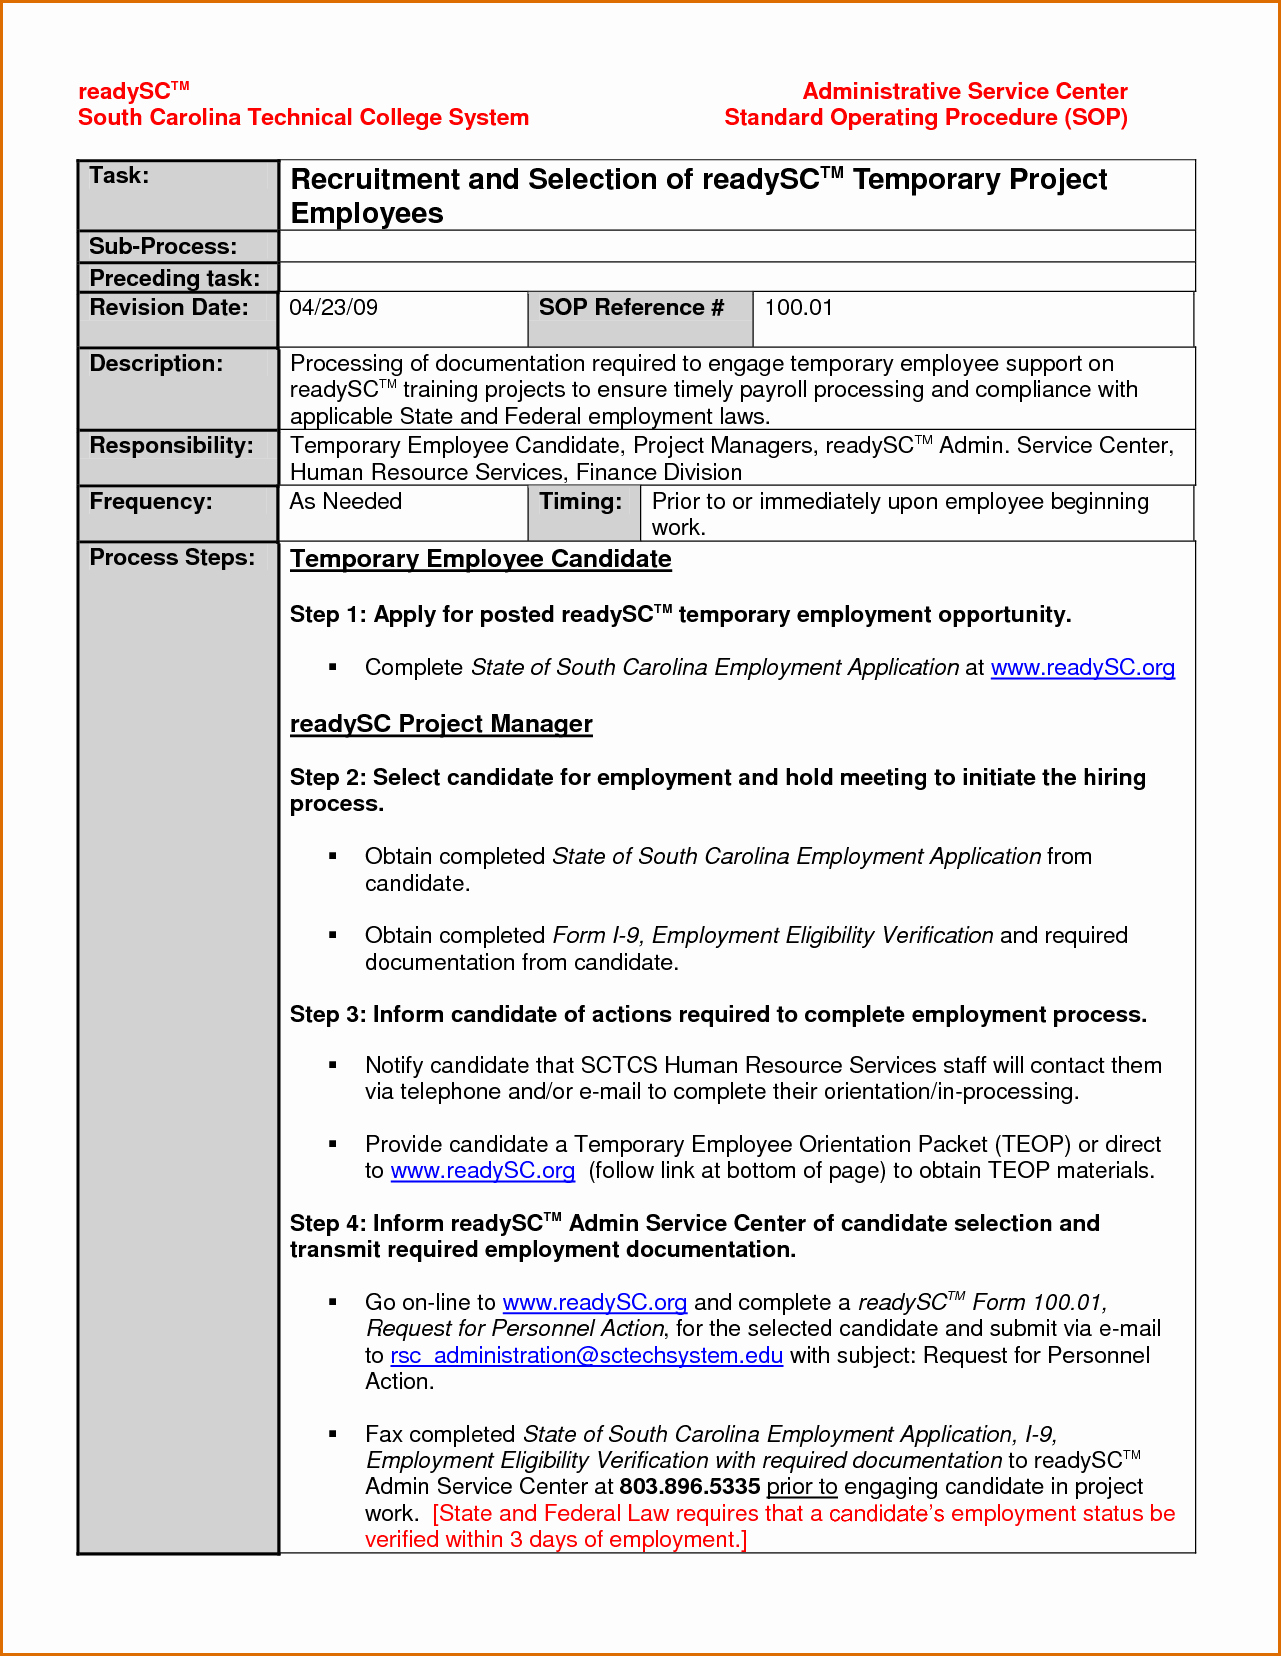 Standard Operation Procedure Template New 14 Standard Operating Procedures Templates